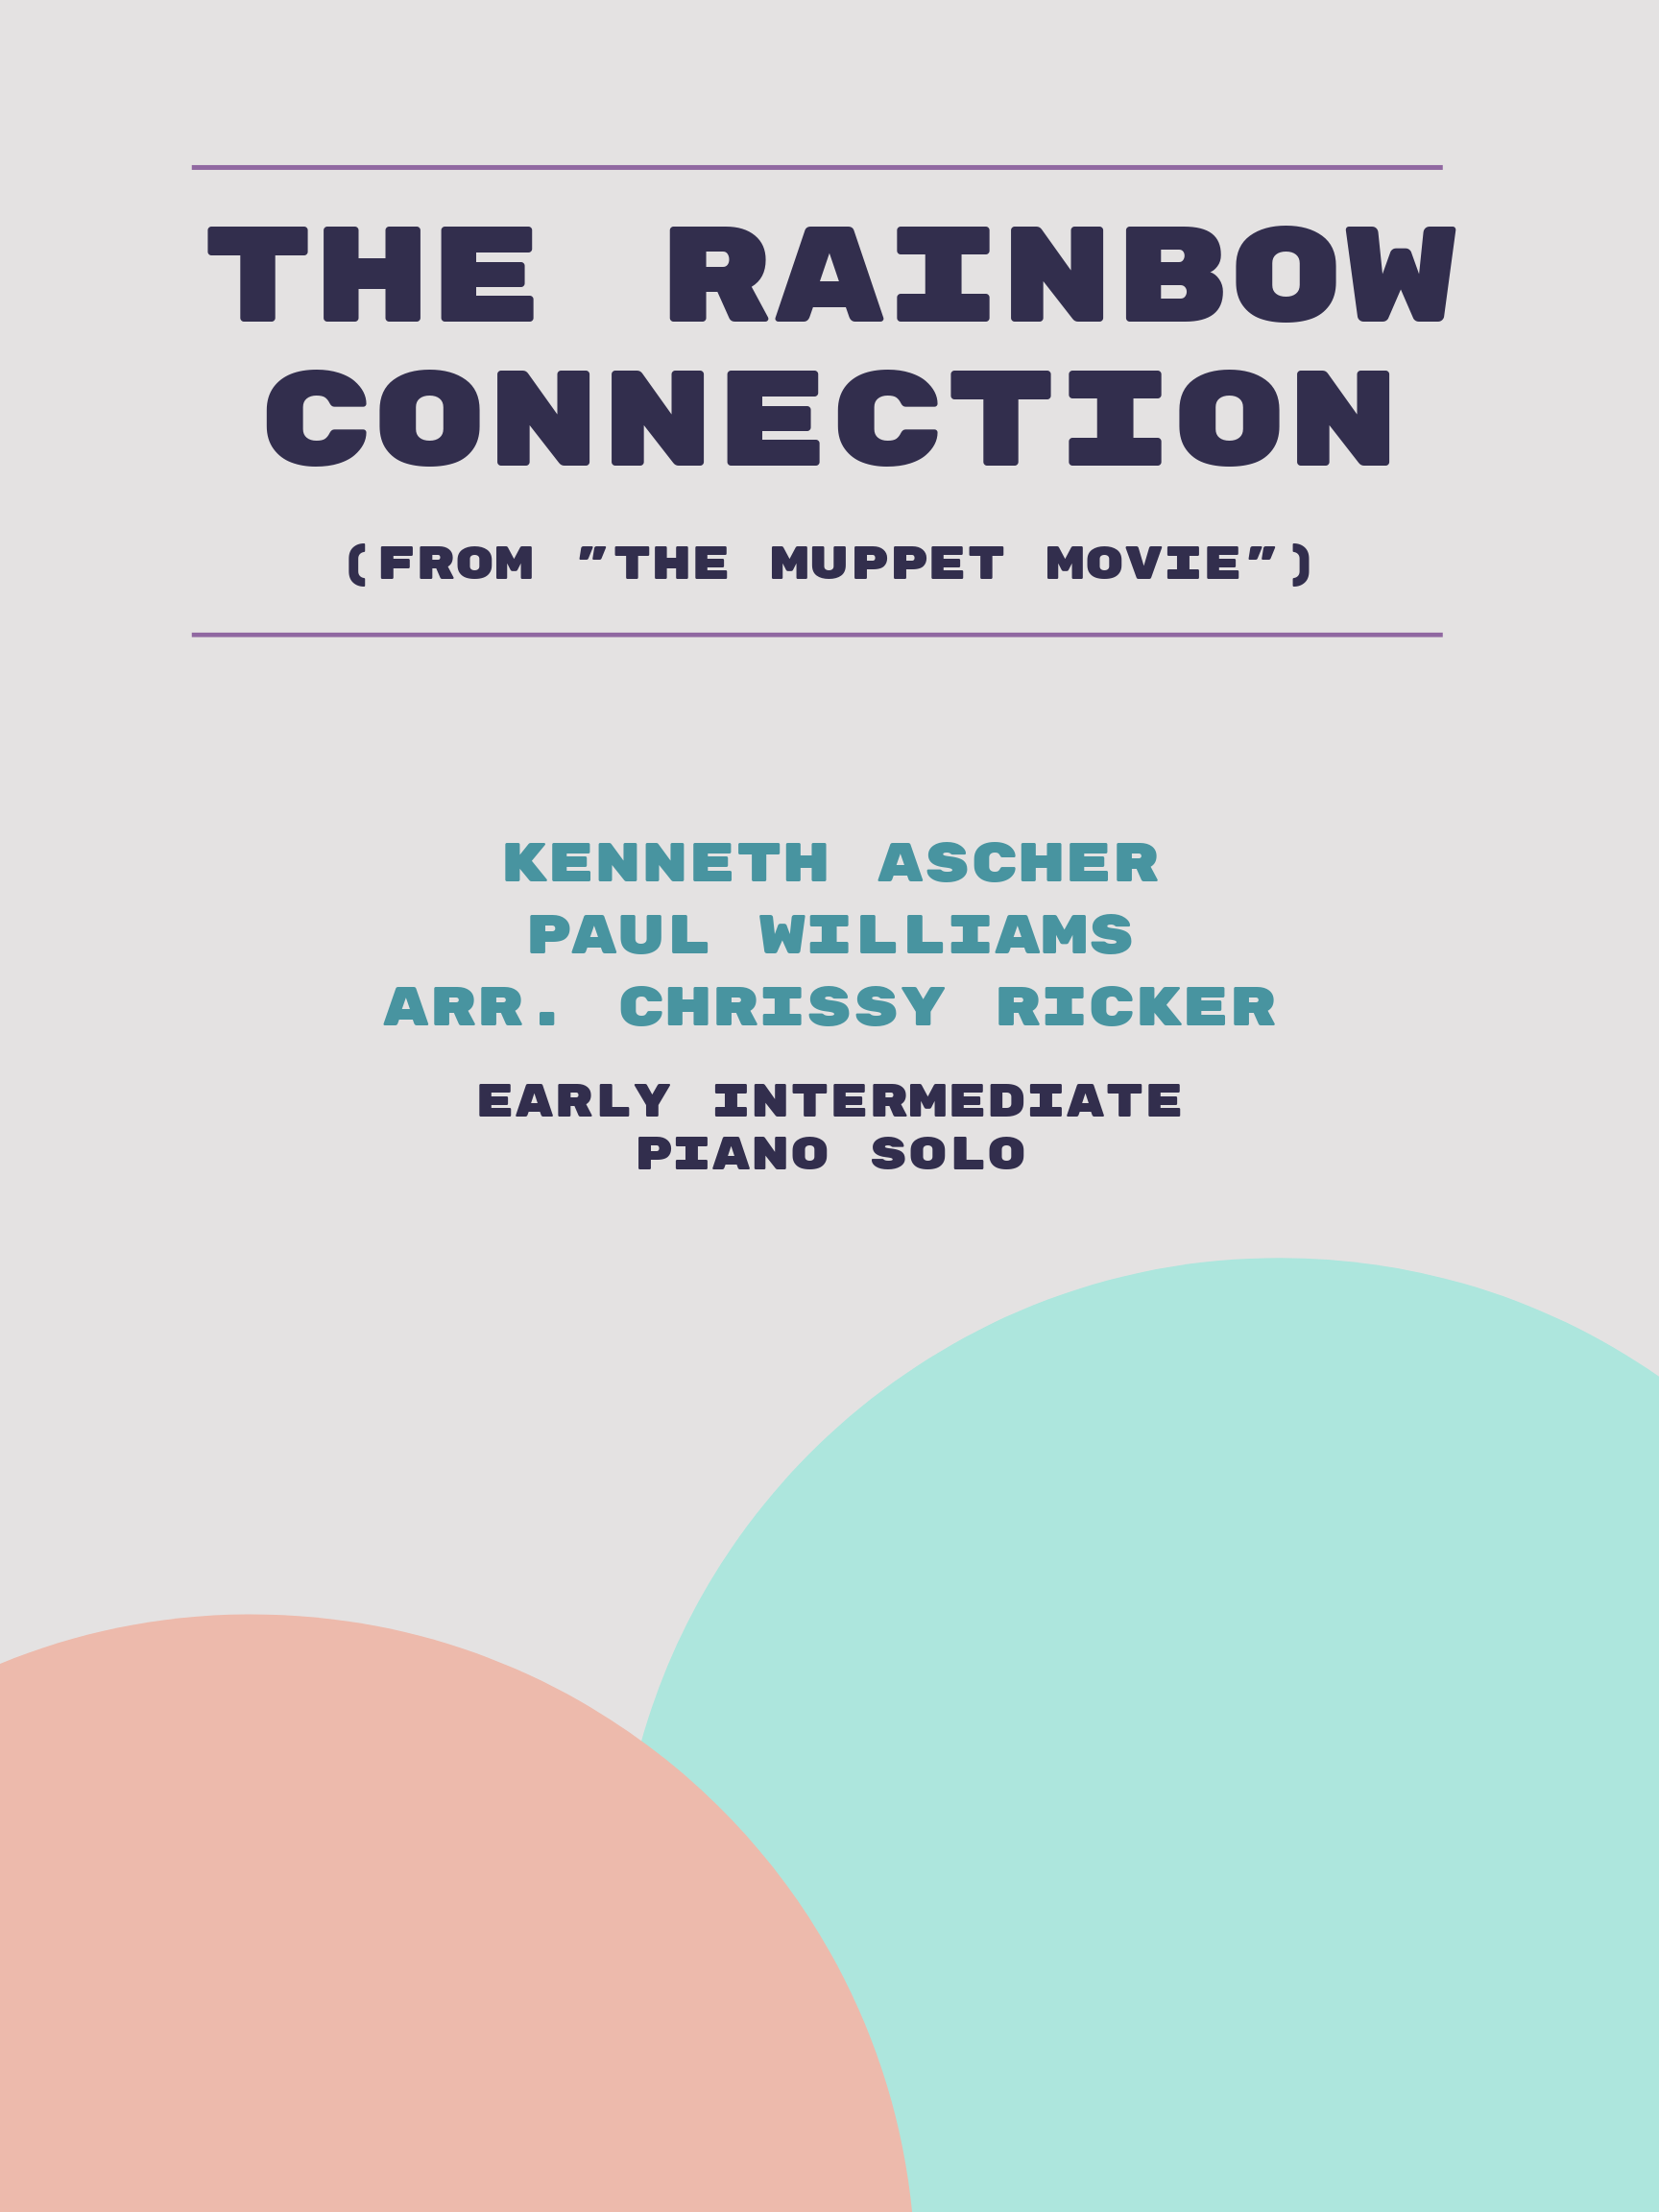 The Rainbow Connection by Kenneth Ascher, Paul Williams